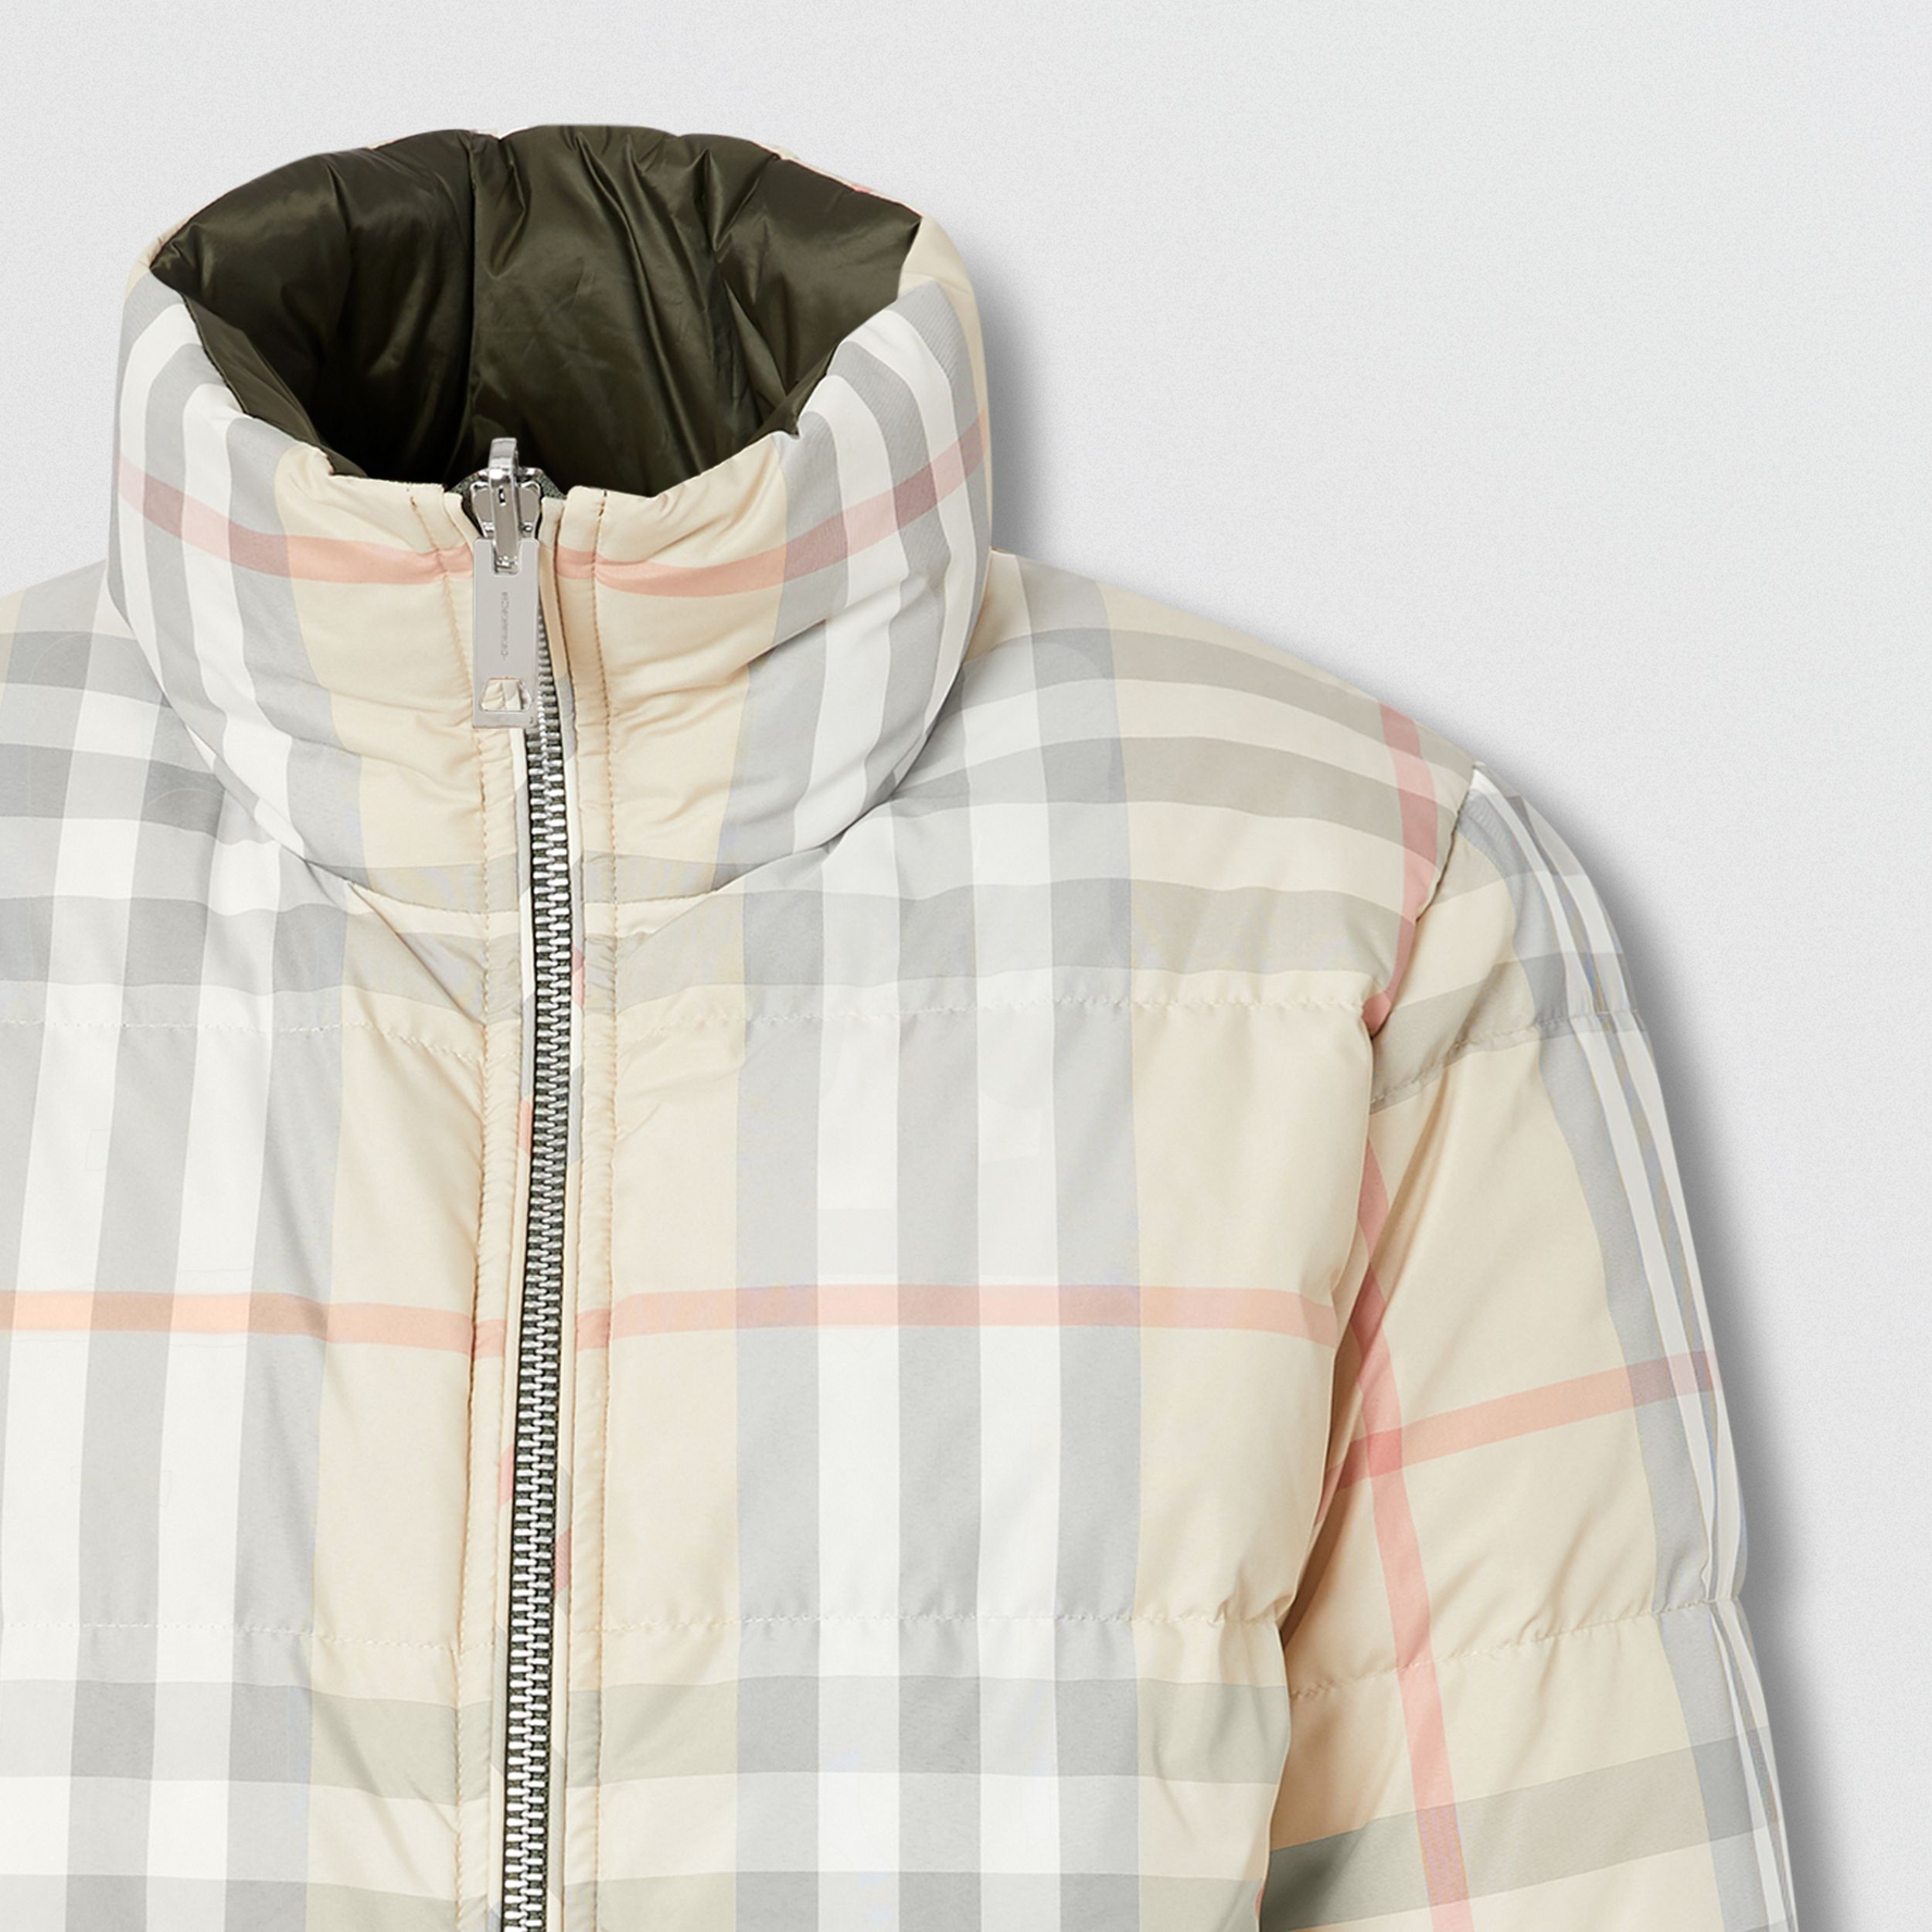 Reversible Check Puffer Jacket in Olive - Women | Burberry - 2